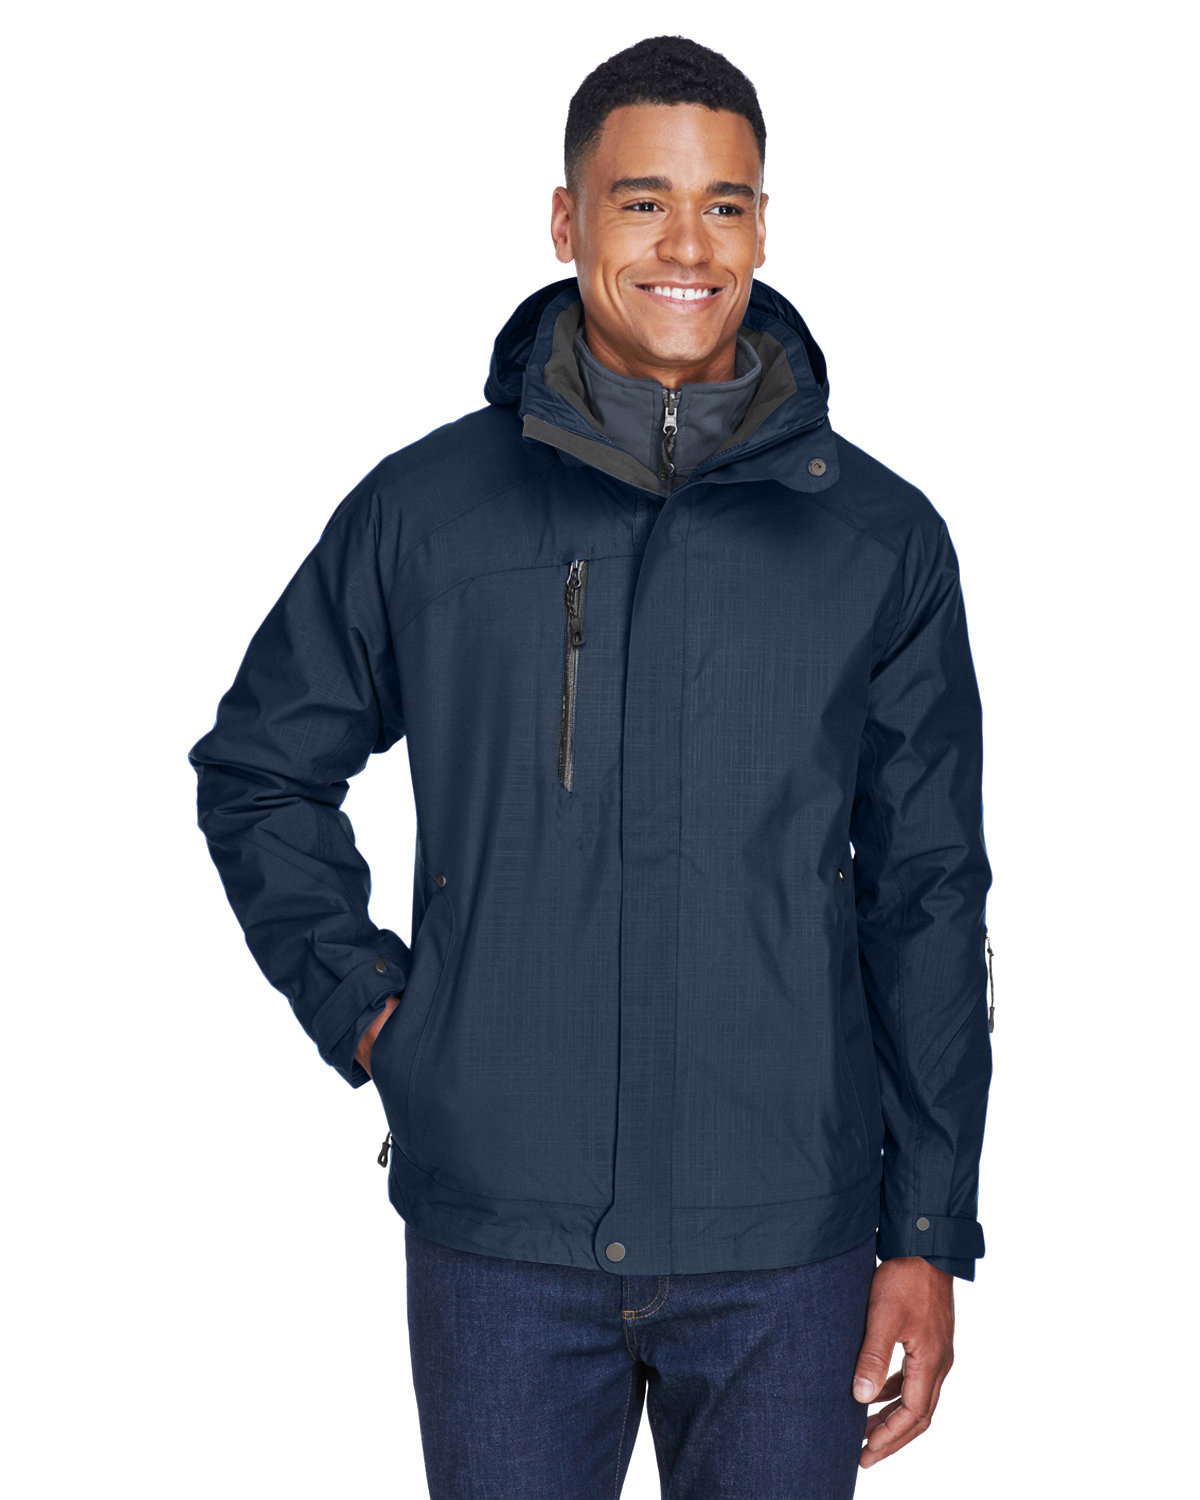 North End Men's Caprice 3-in-1 Jacket with Soft Shell Liner CLASSIC NAVY